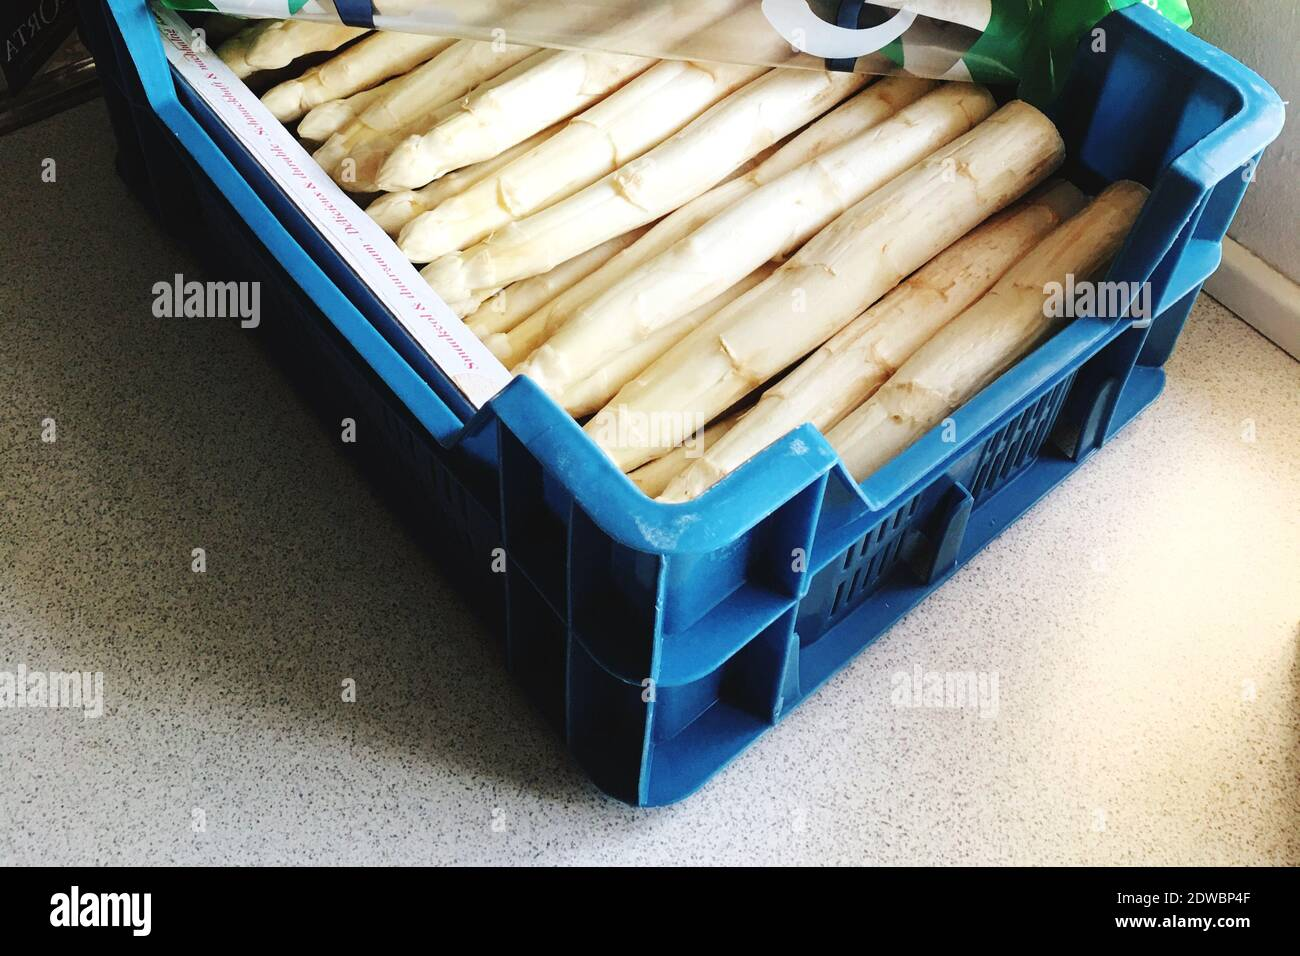 High Angle View Of Vegetable In Crate Stock Photo